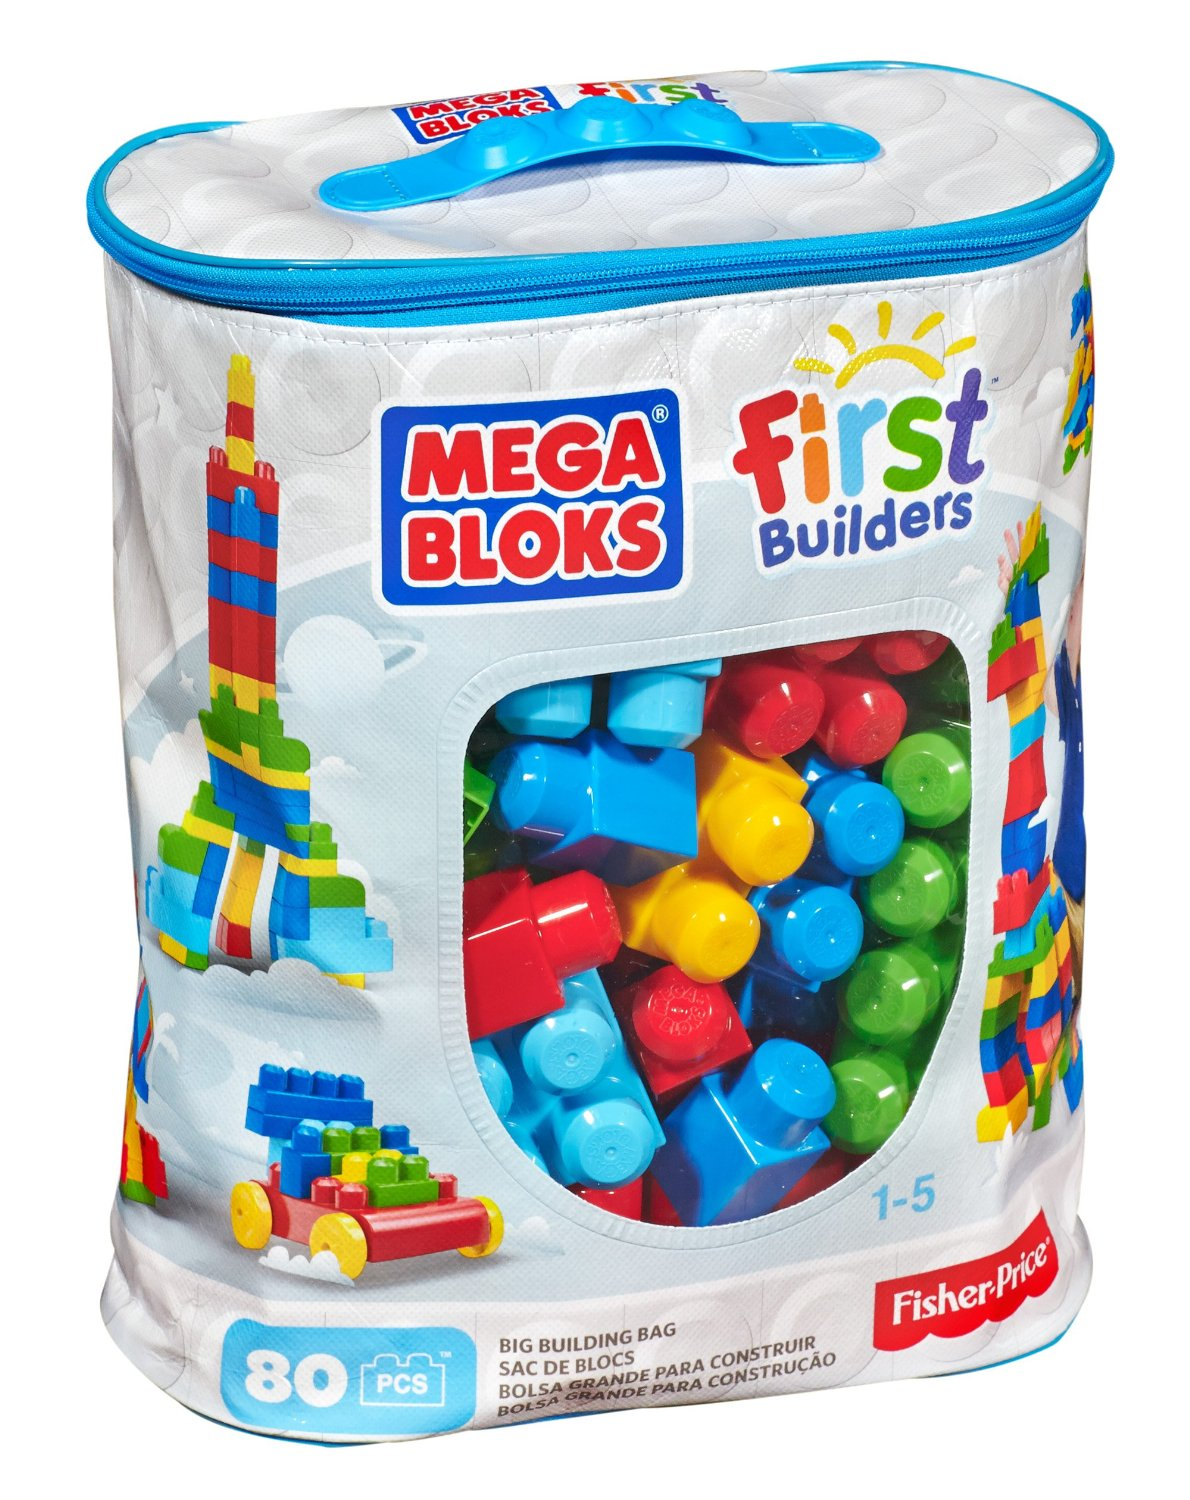 Walmart Toys 3 Year Old : Lovetobemrsb best toys for year olds